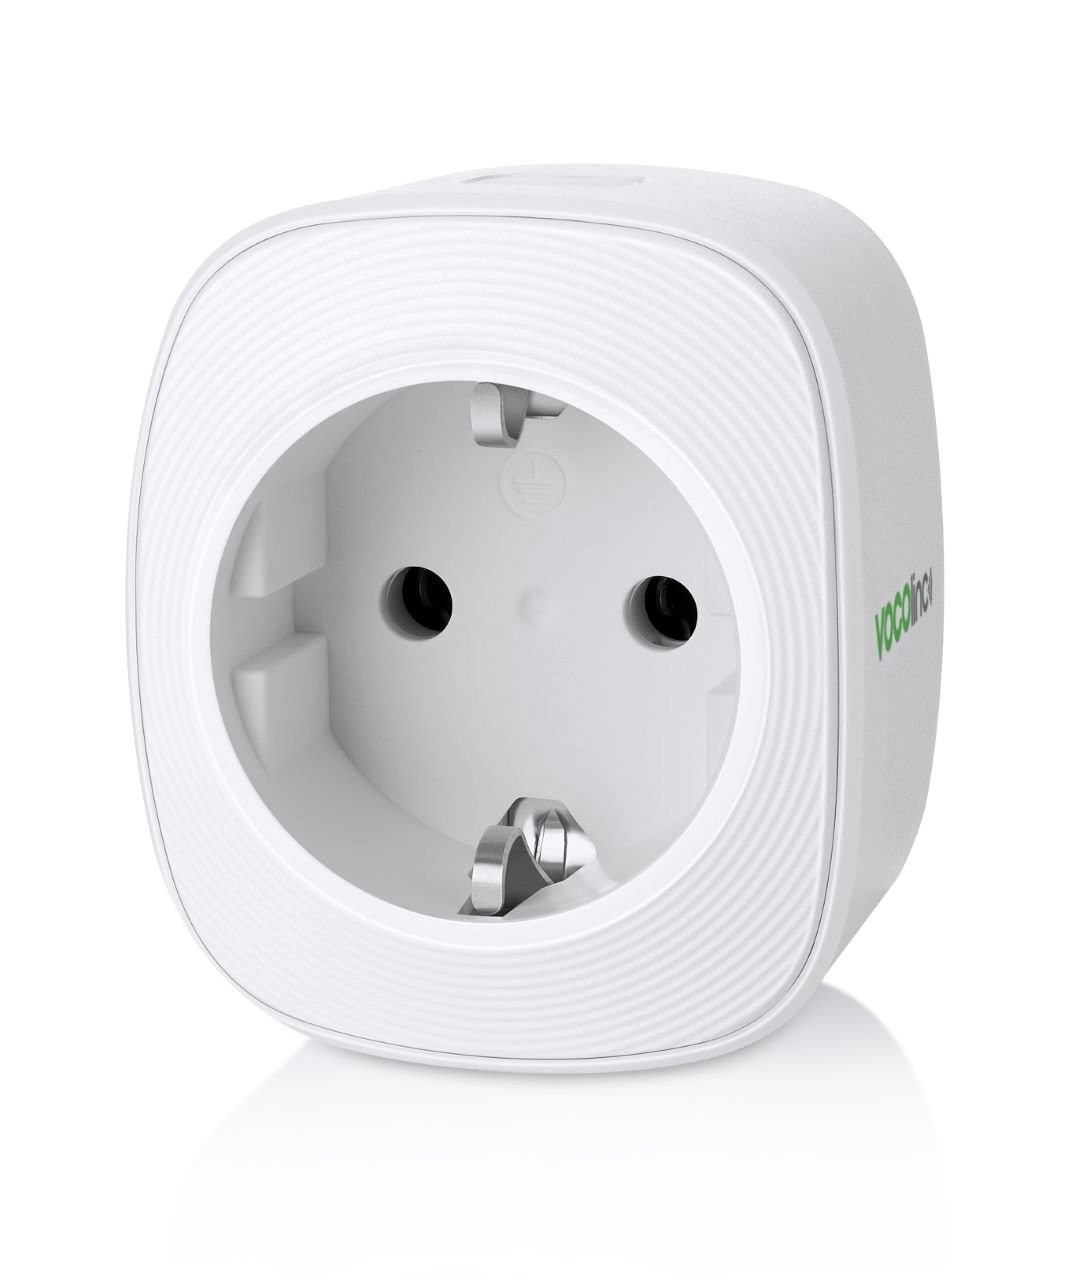 VOCOlinc Smart Wi-Fi Outlet Einerpack VP3